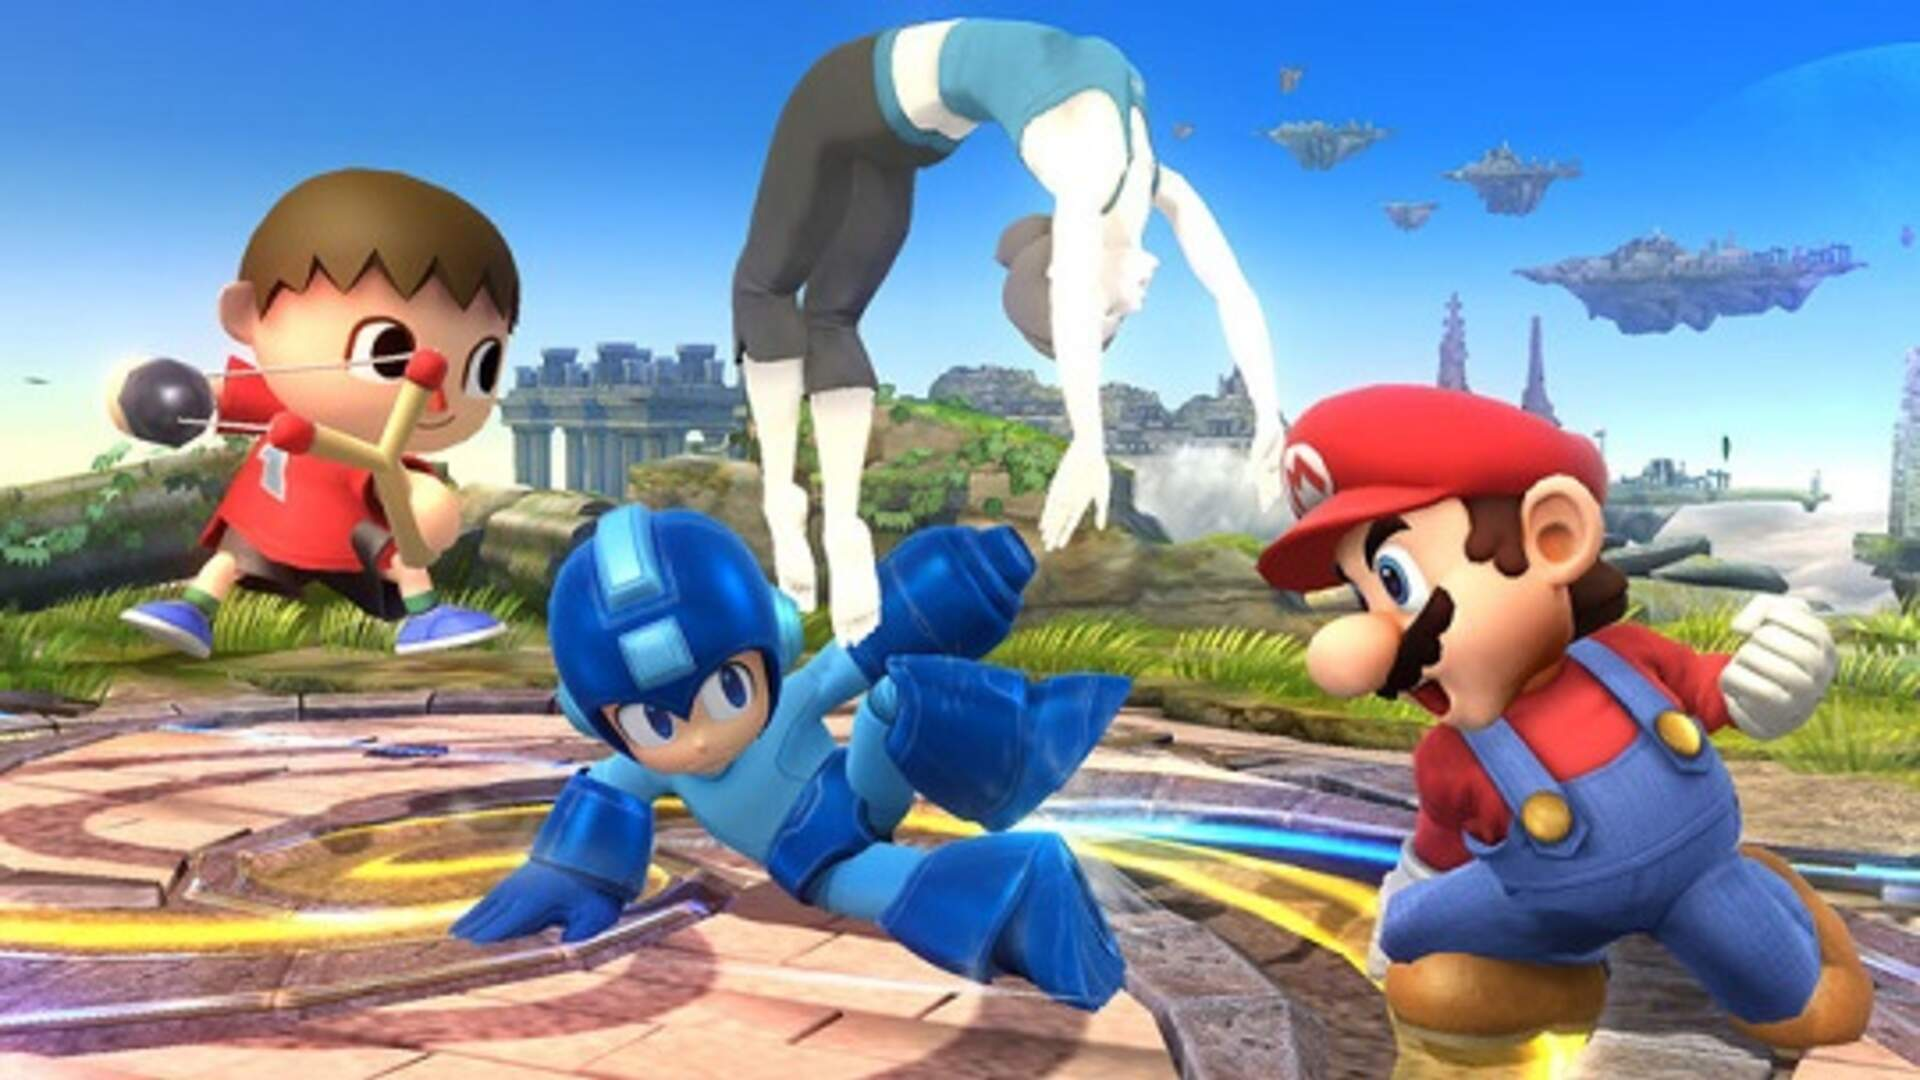 Disney XD Will Air the Super Smash Bros. Finals